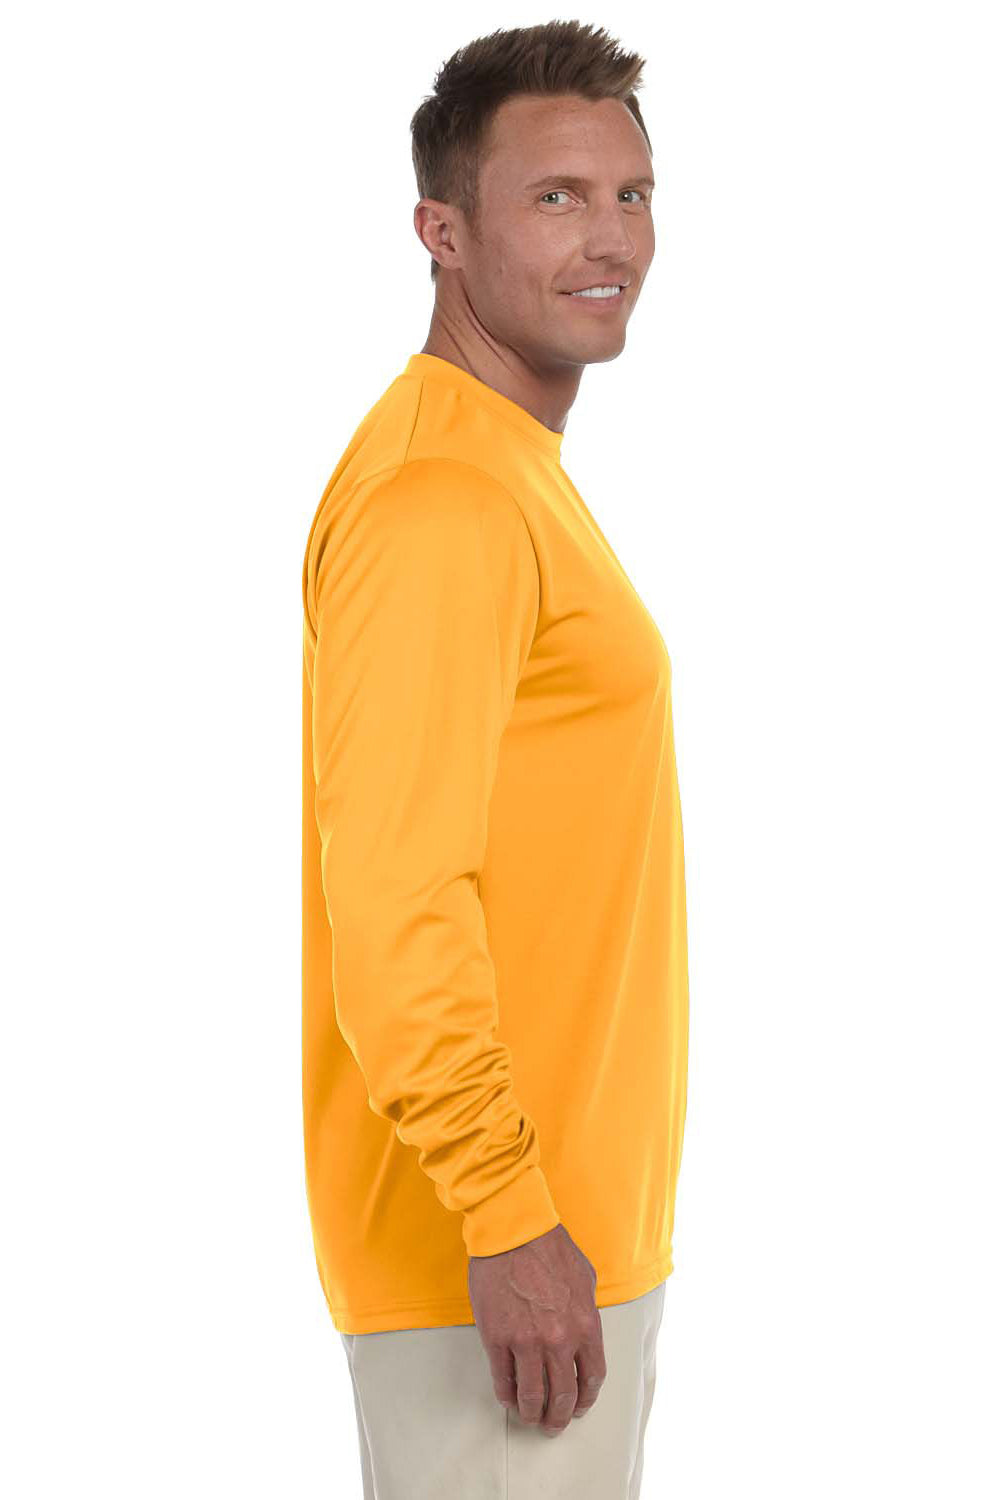 Augusta Sportswear 788 Mens Moisture Wicking Long Sleeve Crewneck T-Shirt Gold Side